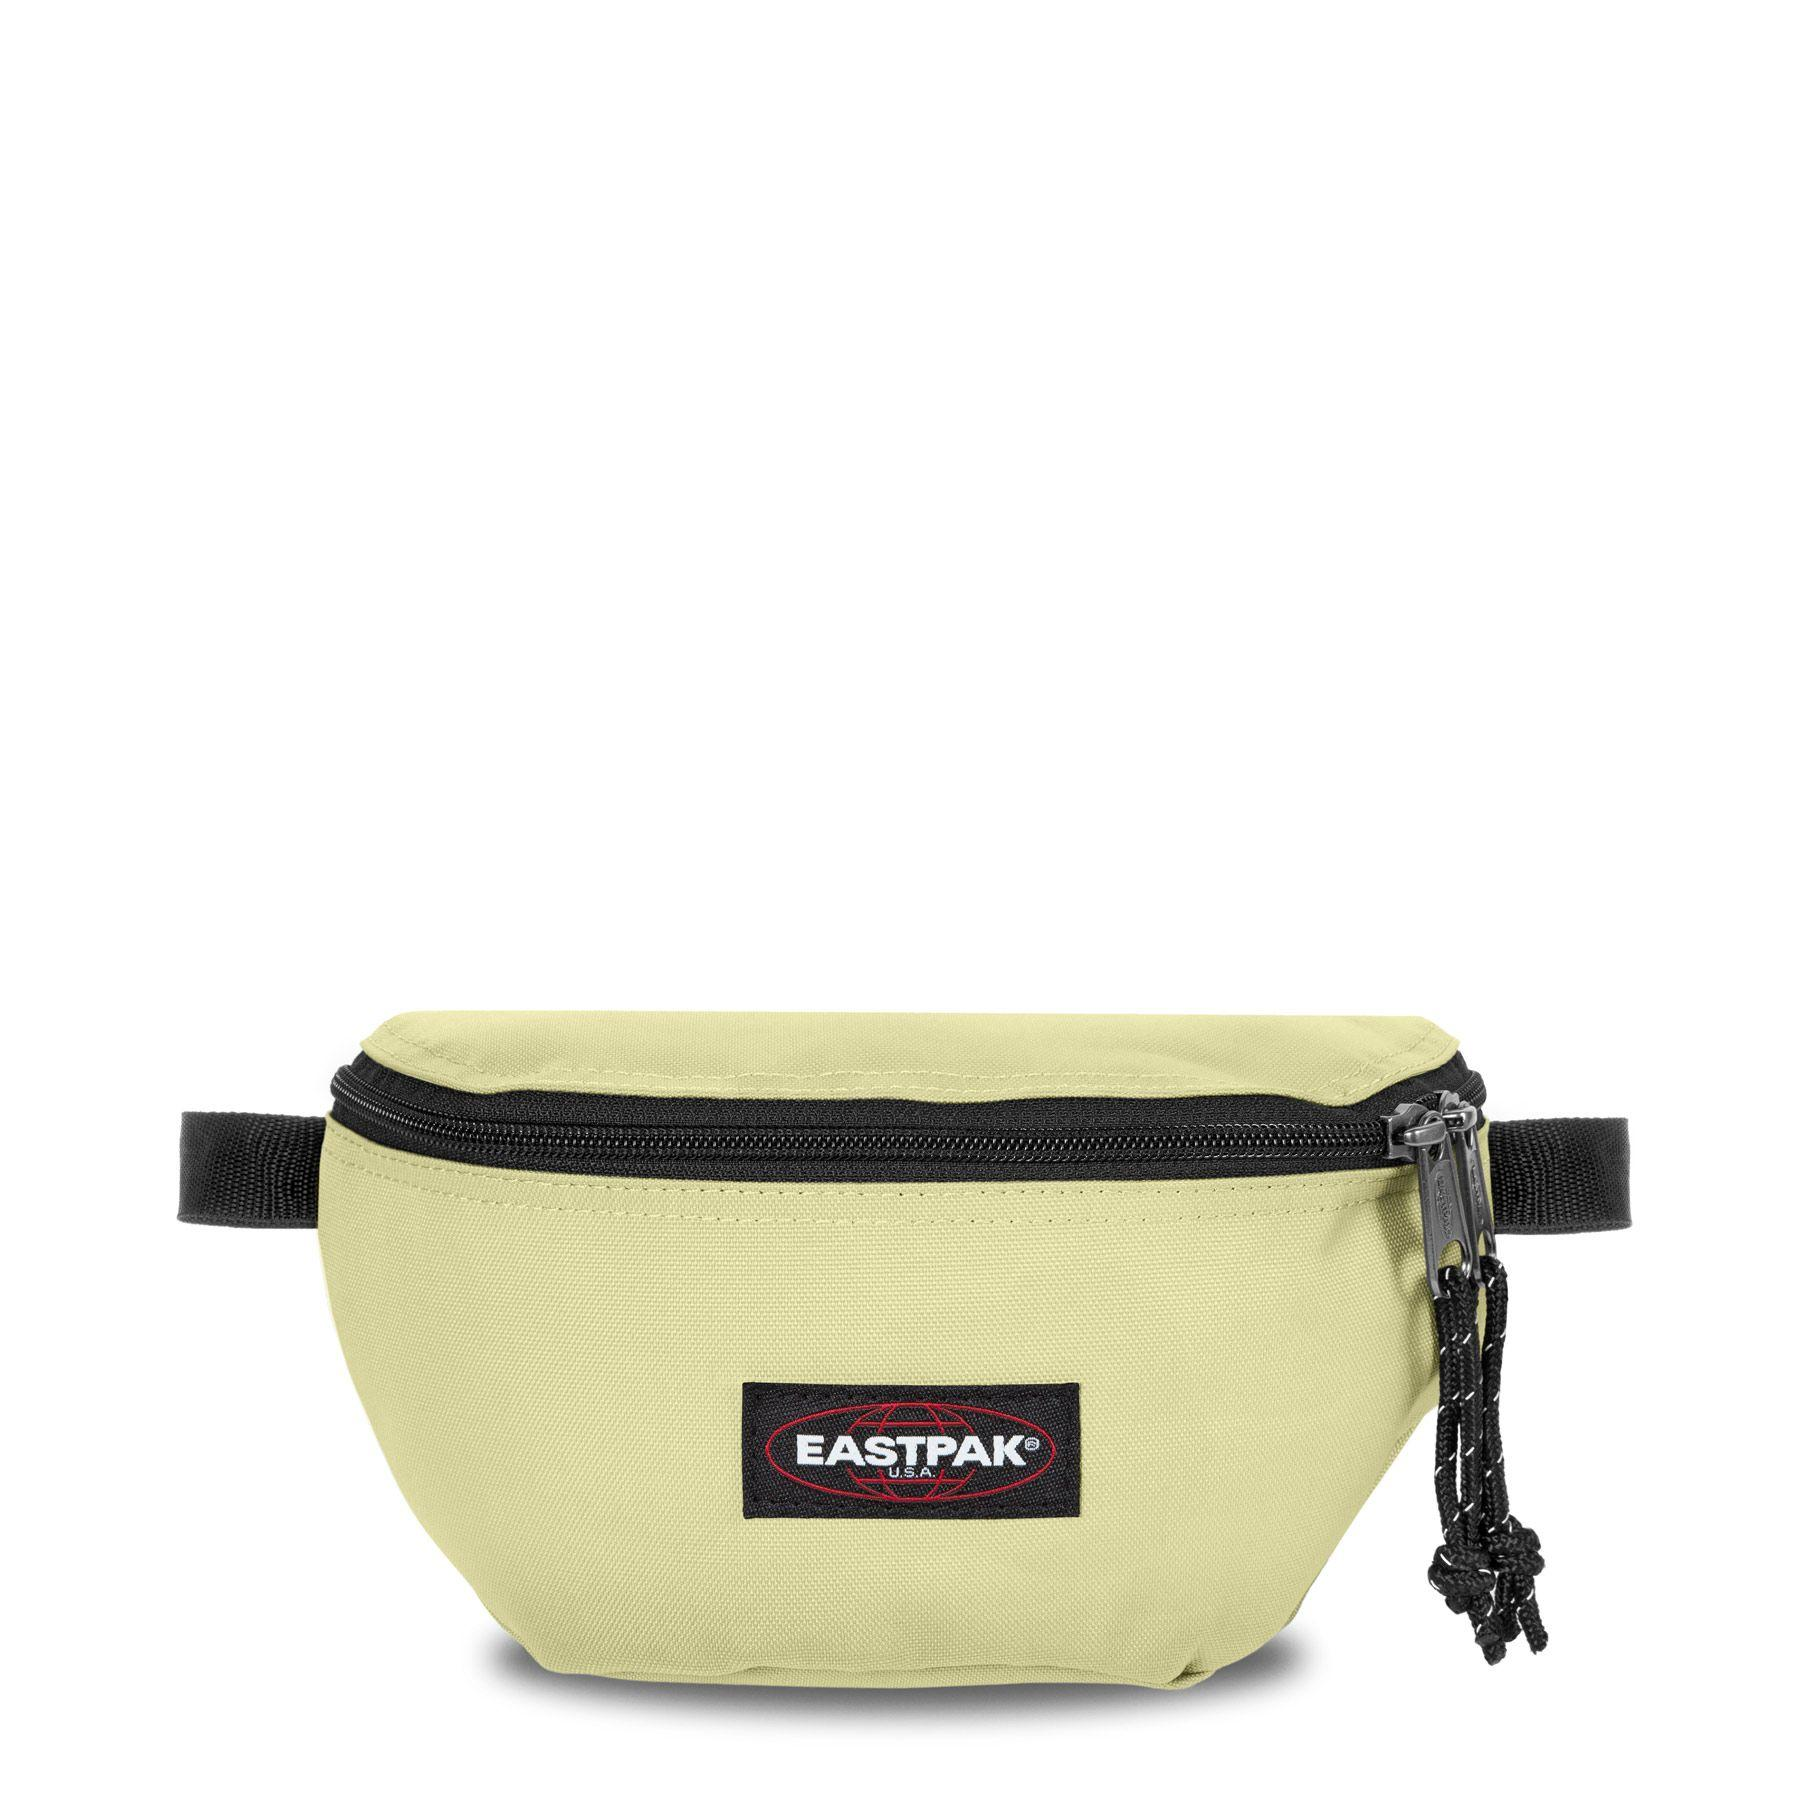 Eastpak Springer Icy yellow